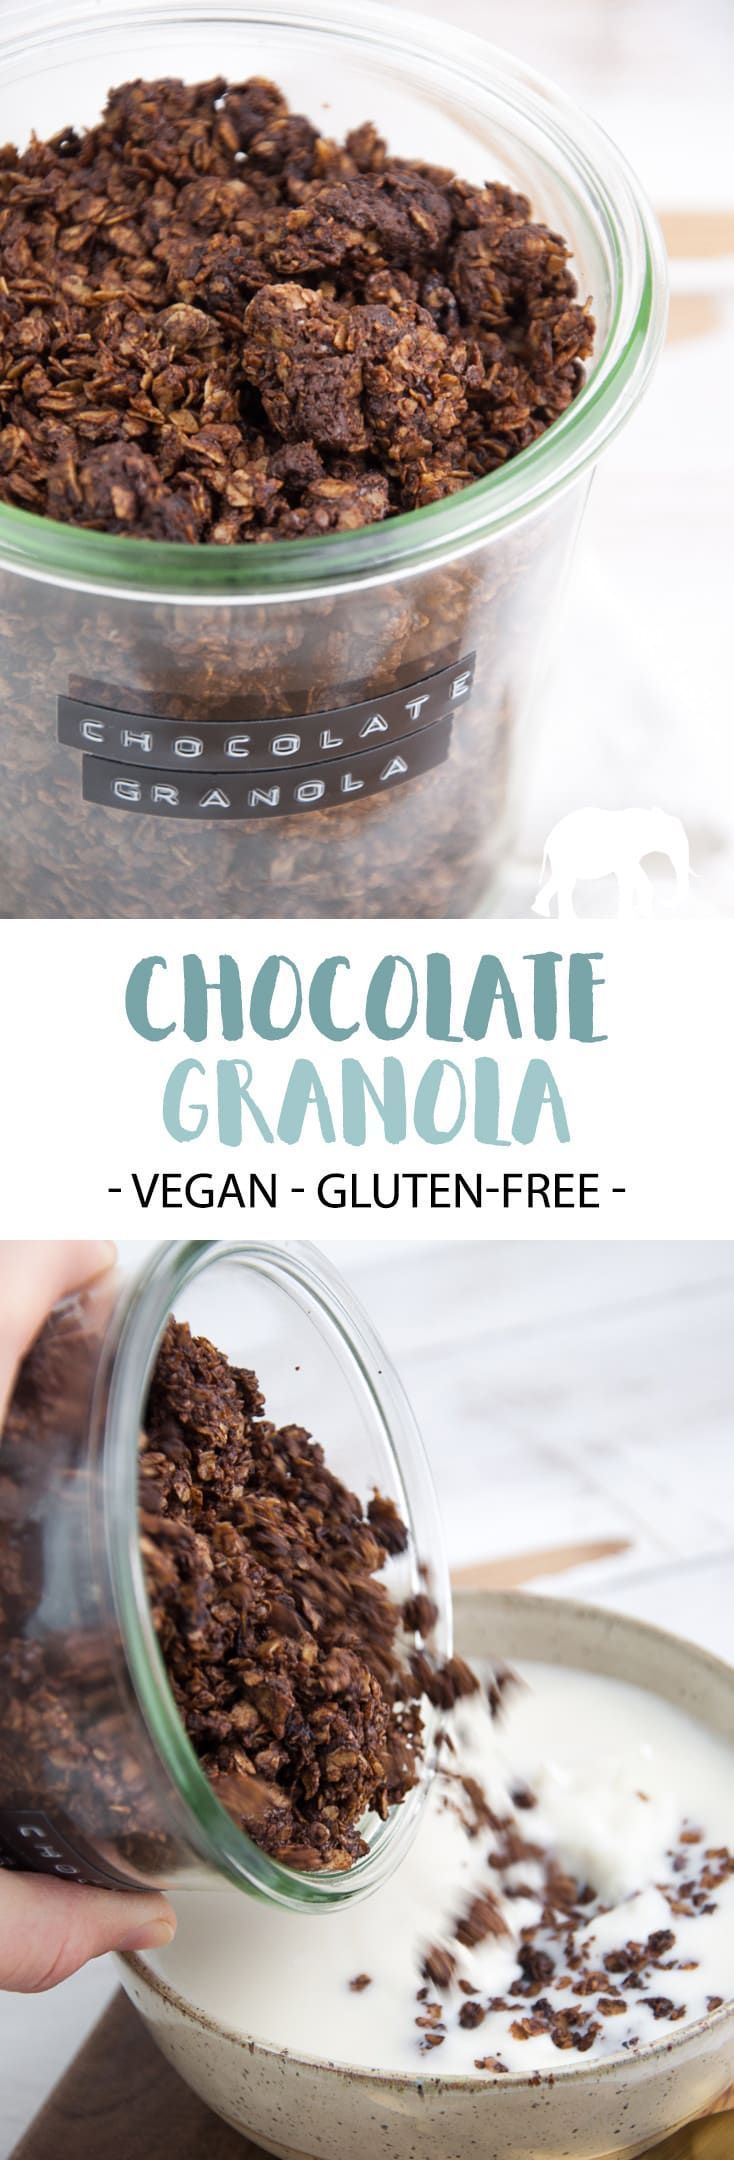 Chocolate Granola – It's so easy to make your very own granola! You'll only need…